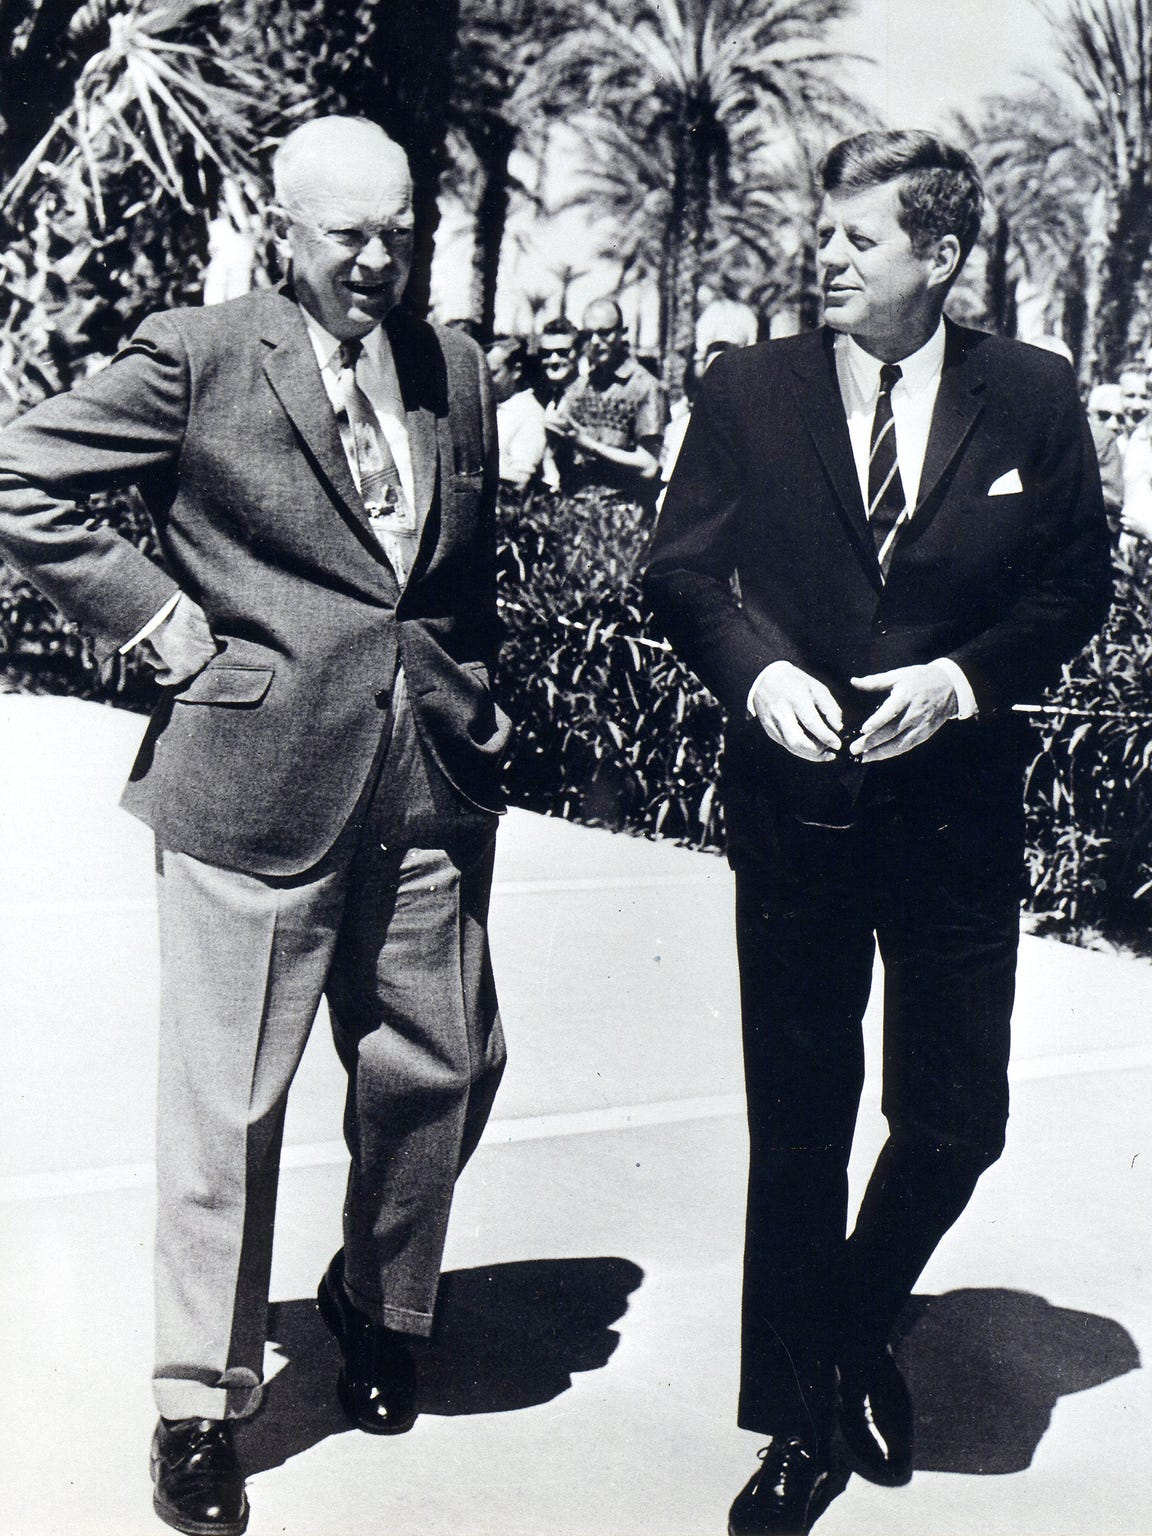 Presidents Dwight D. Eisenhower and John F. Kennedy.